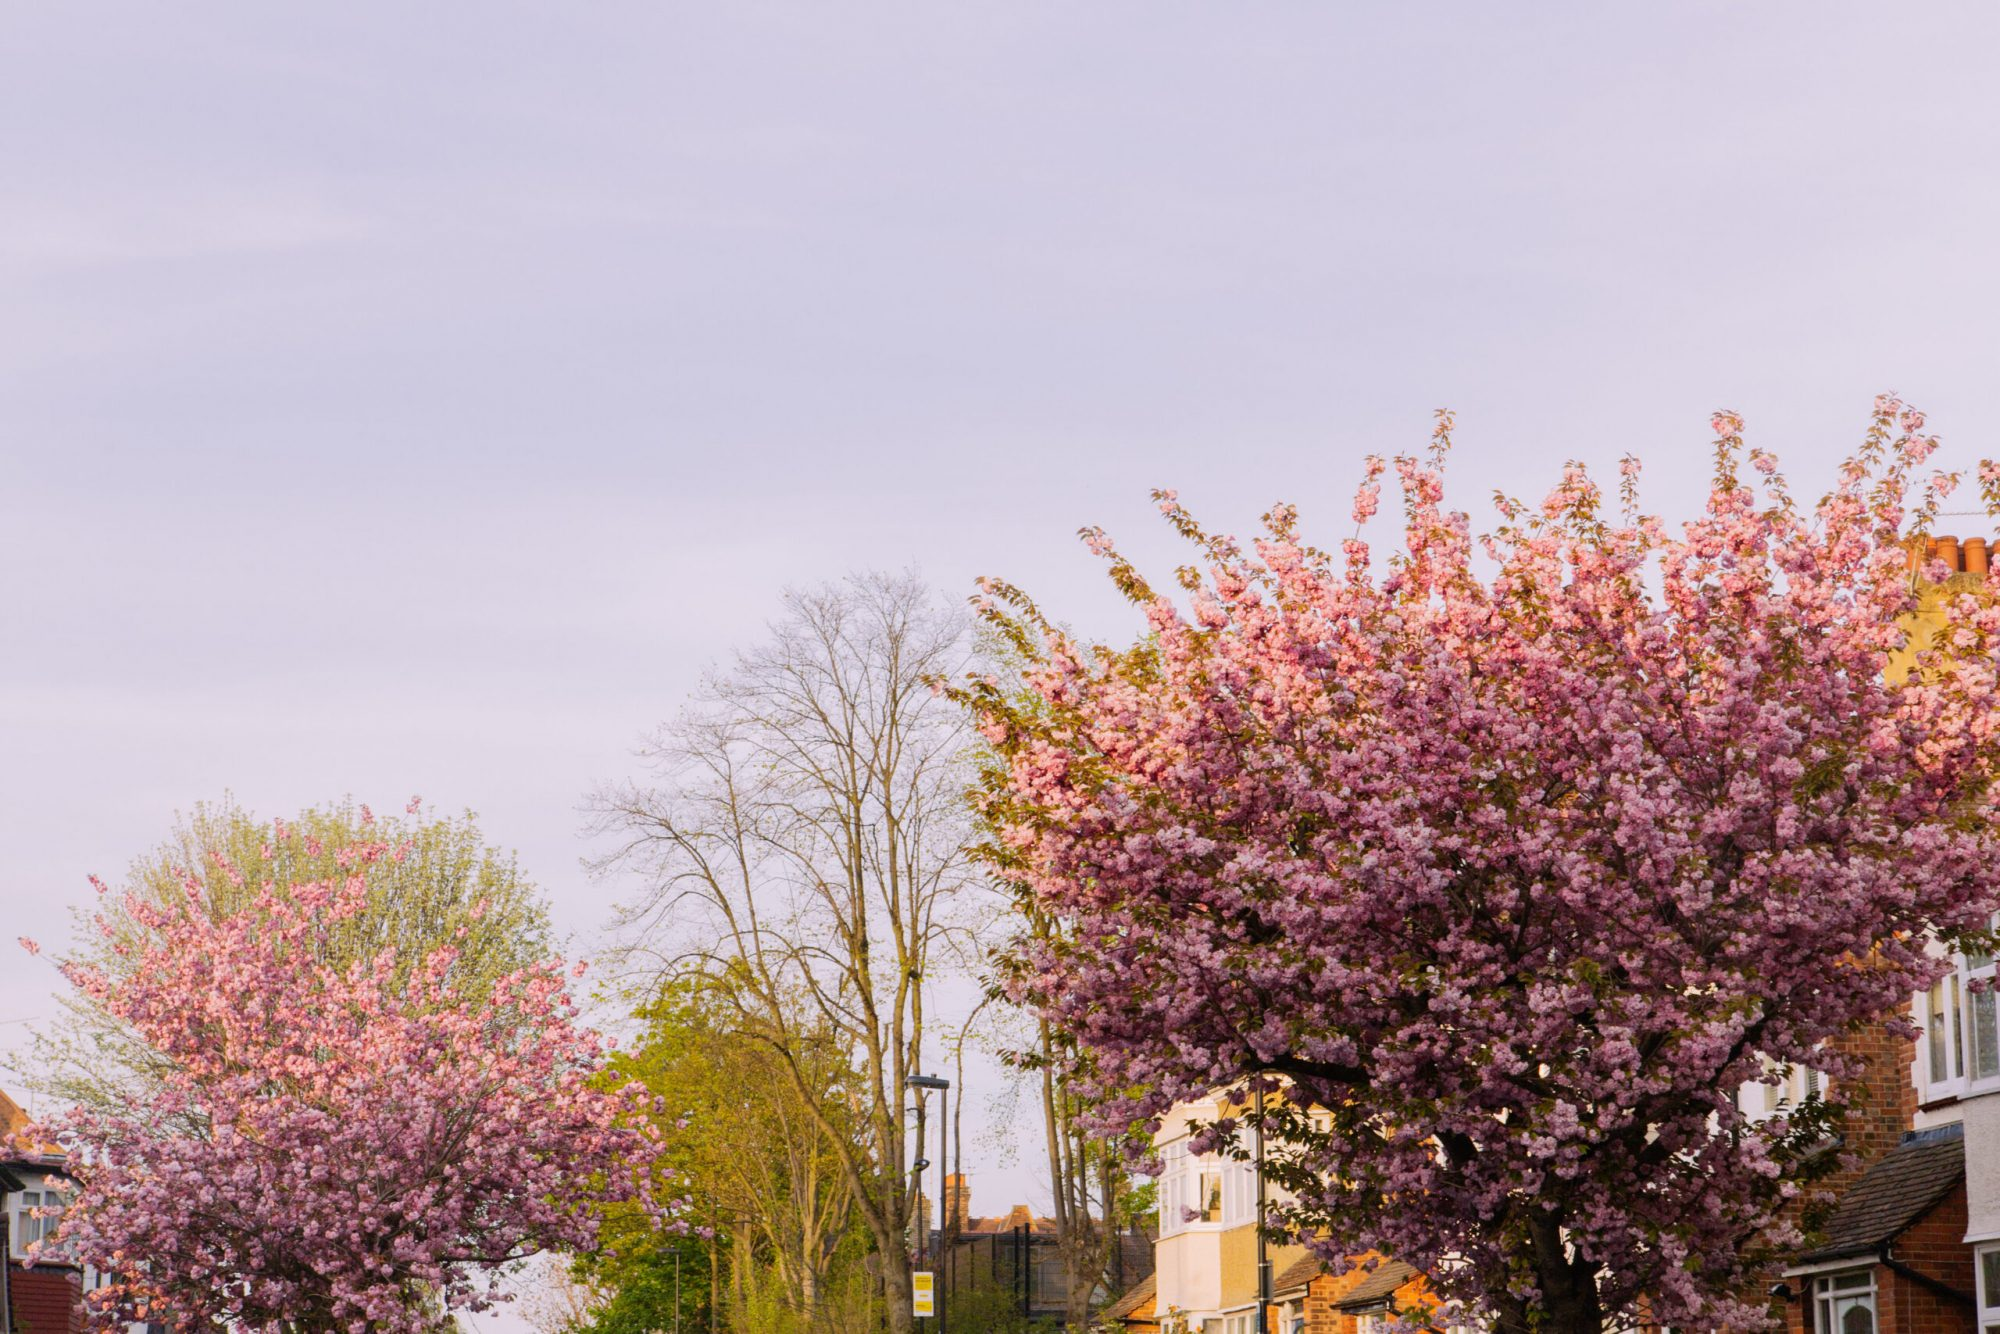 Trees on a street in North London, an area served by Davies & Davies, Estate Agents in Stroud Green.